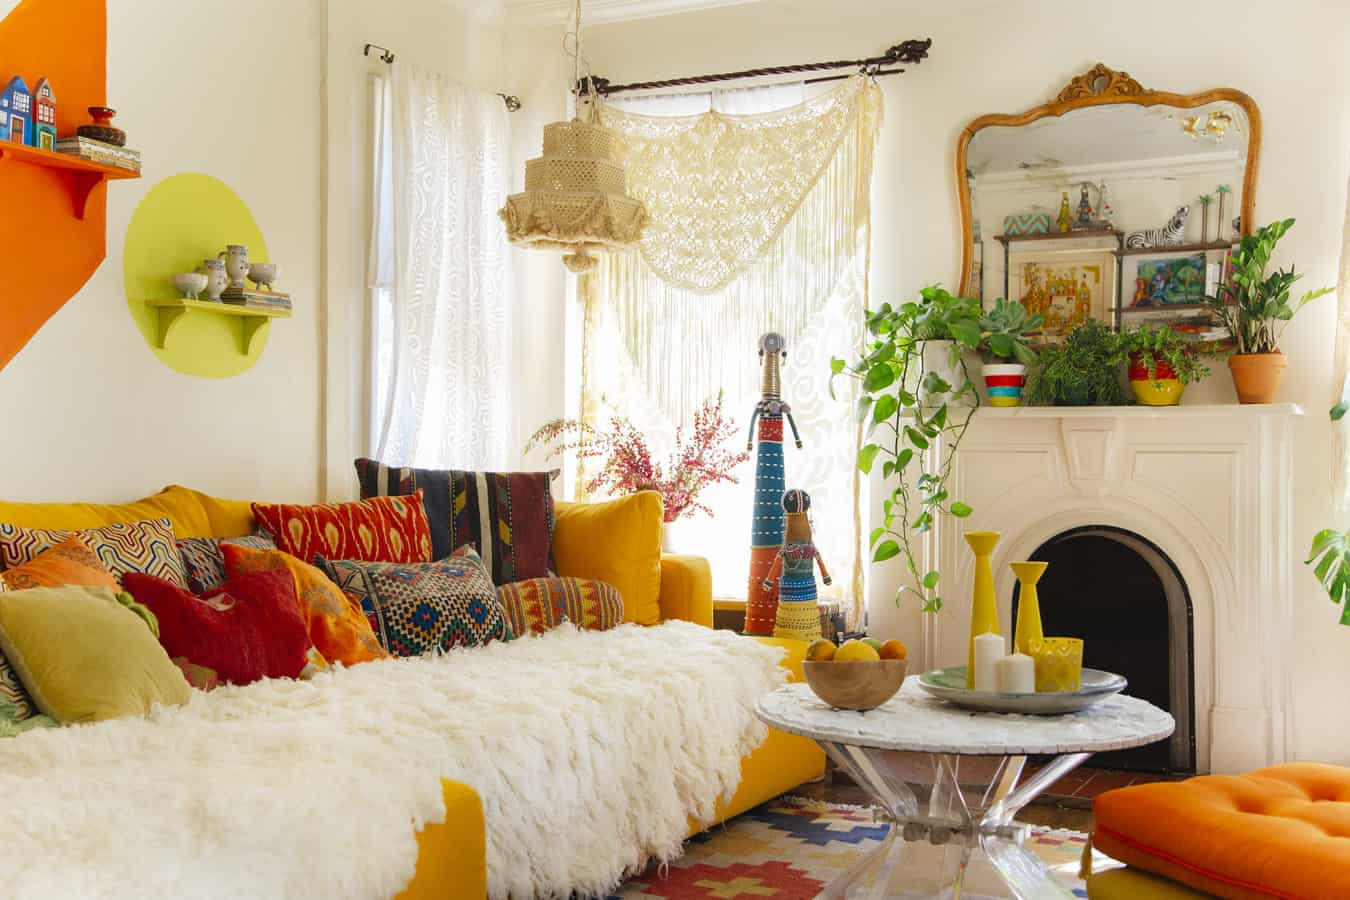 Bohemian decor style full of color